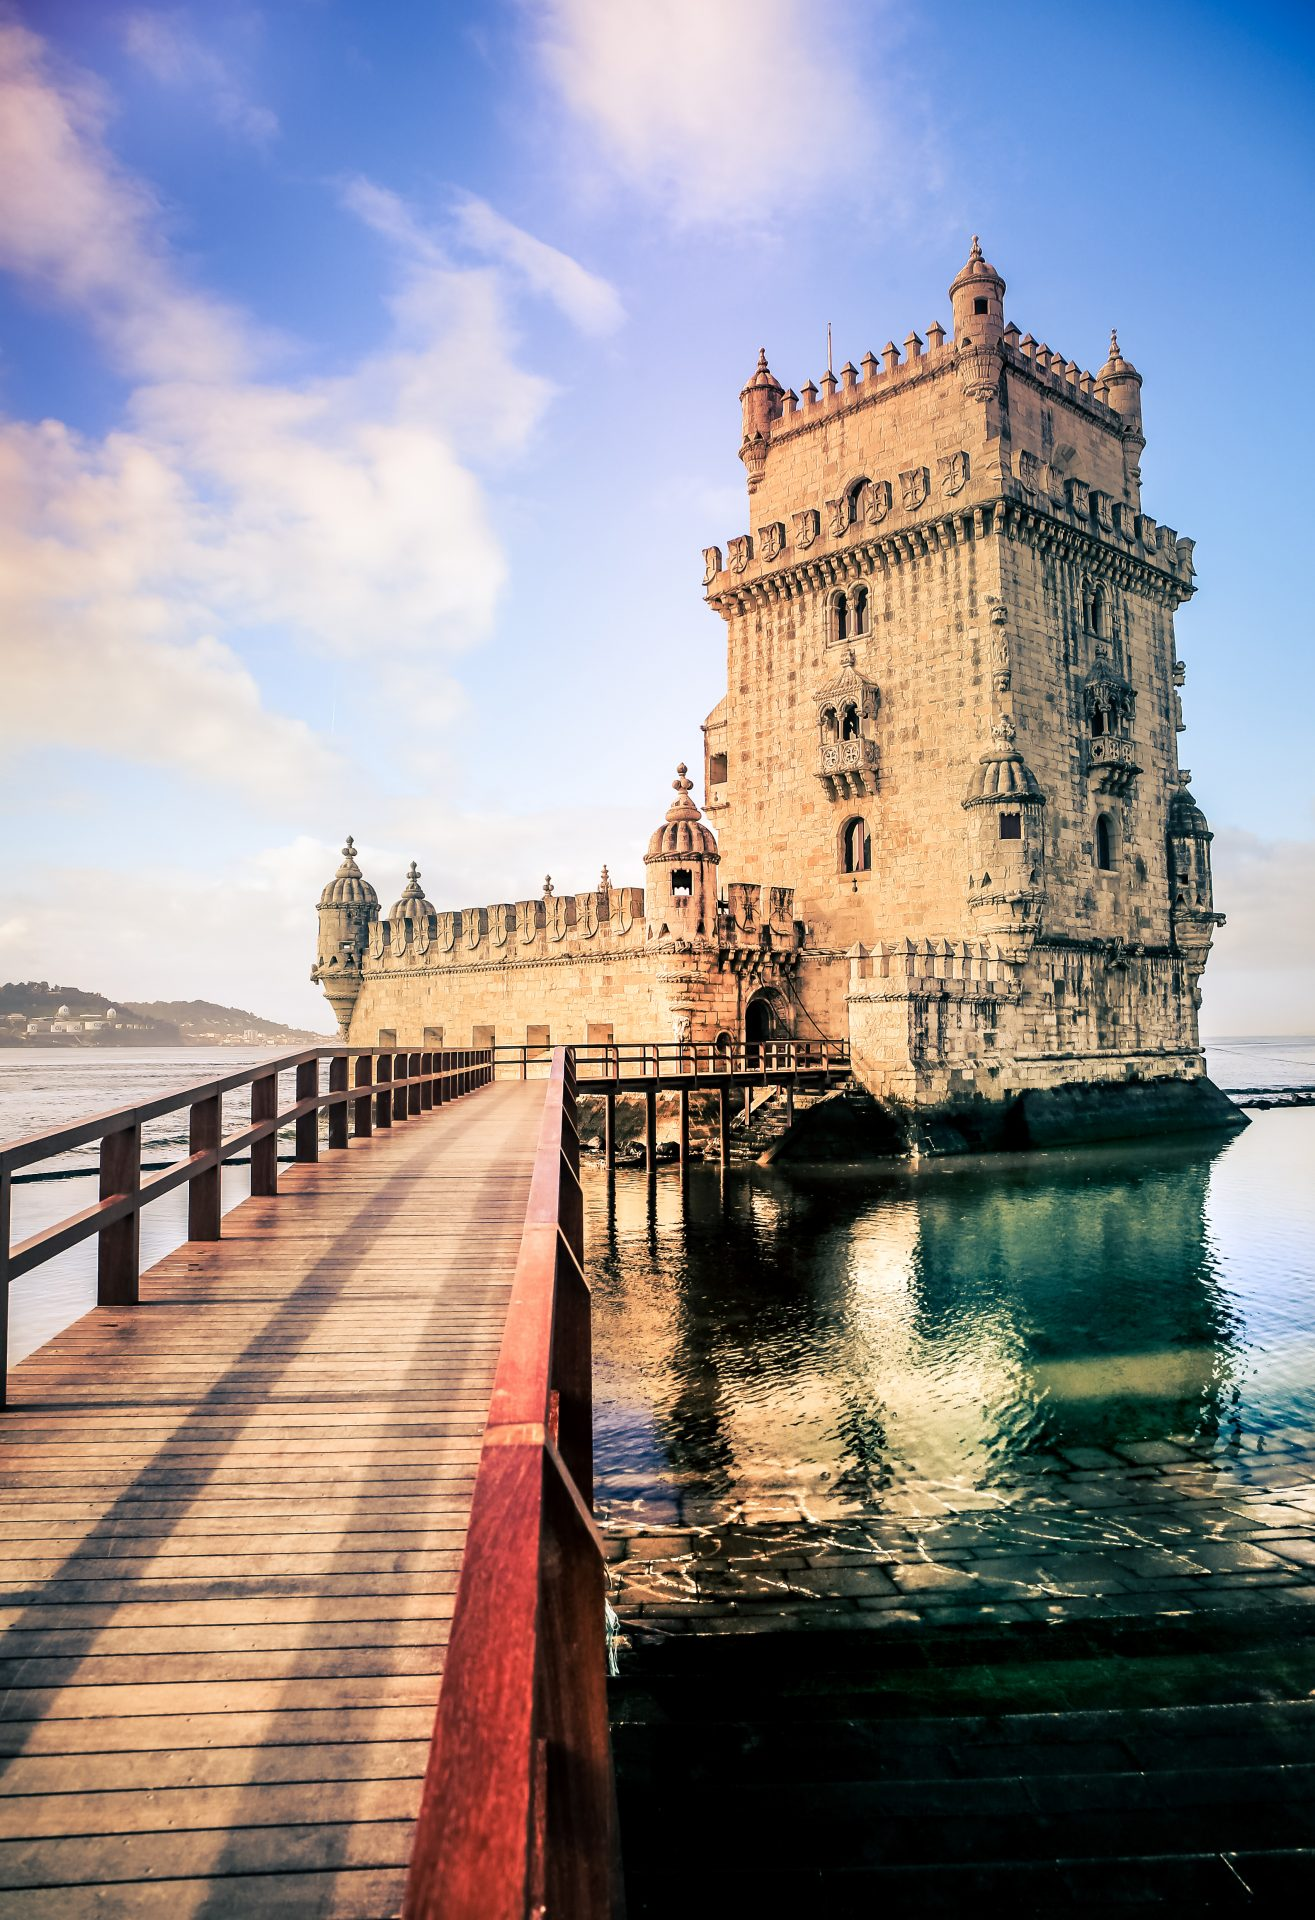 Belem Tower with bridge right before sunset